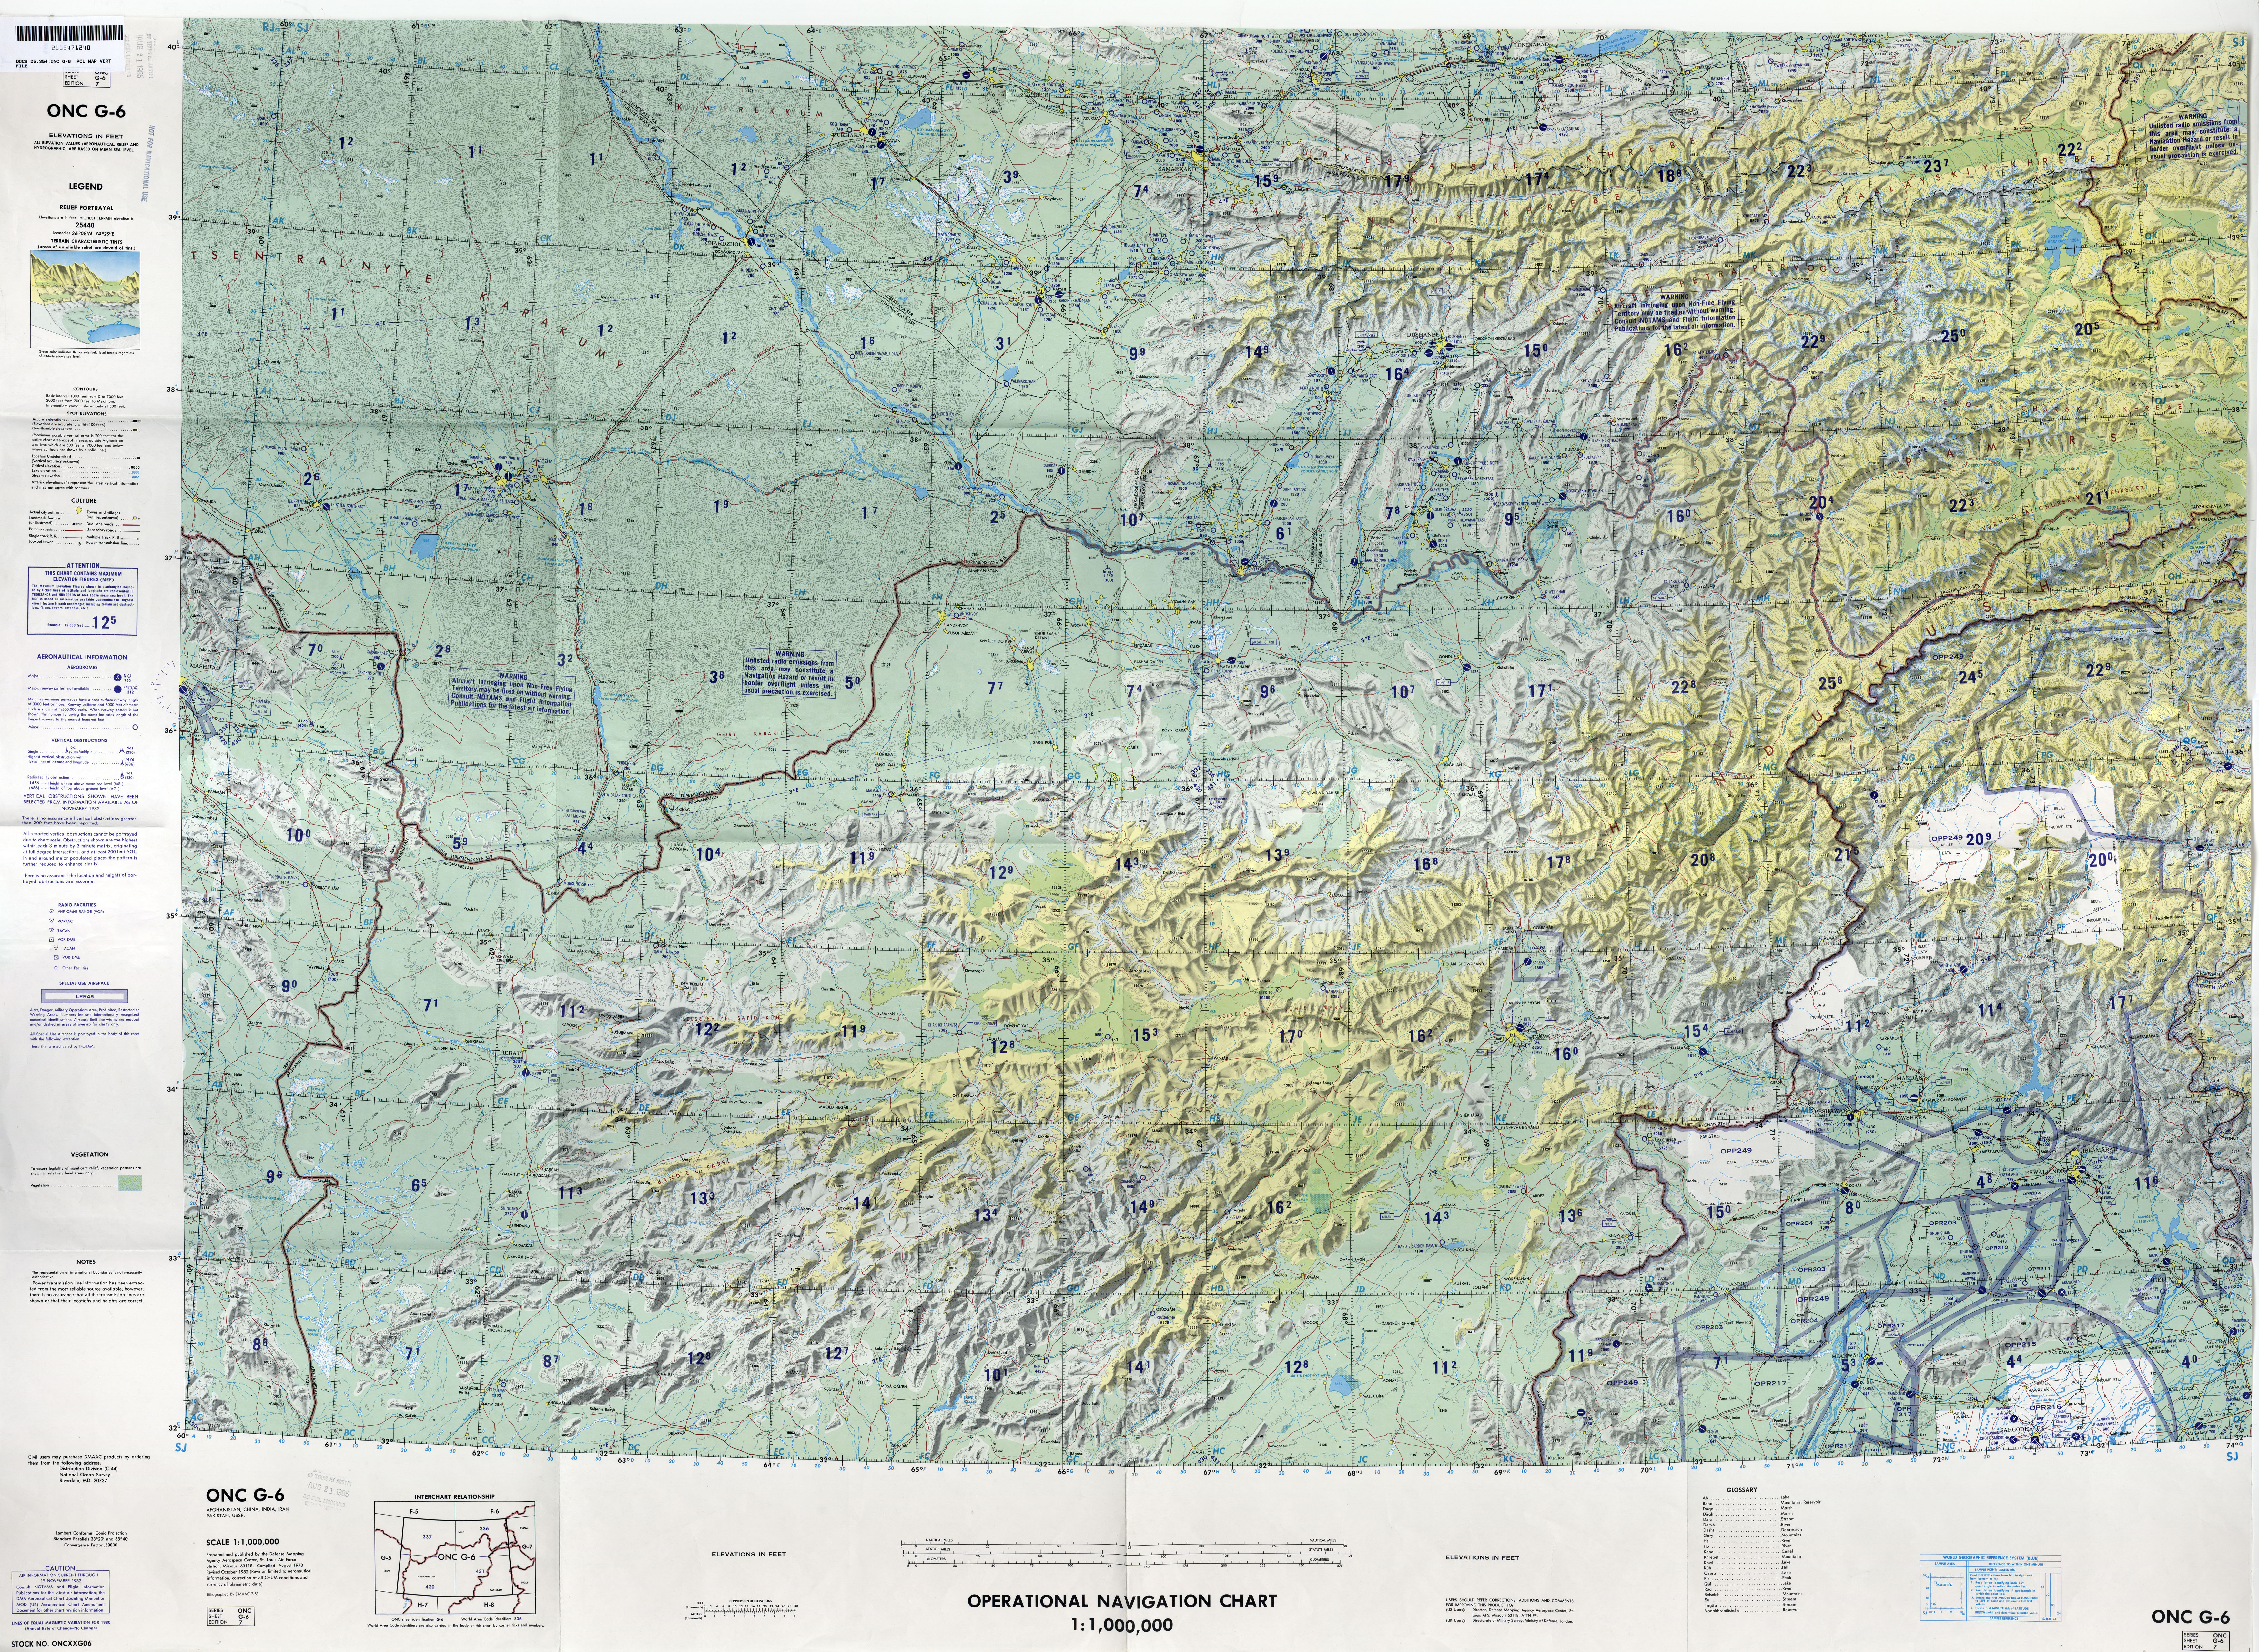 Middle East - Operational Navigation Charts - Perry-Castañeda Map